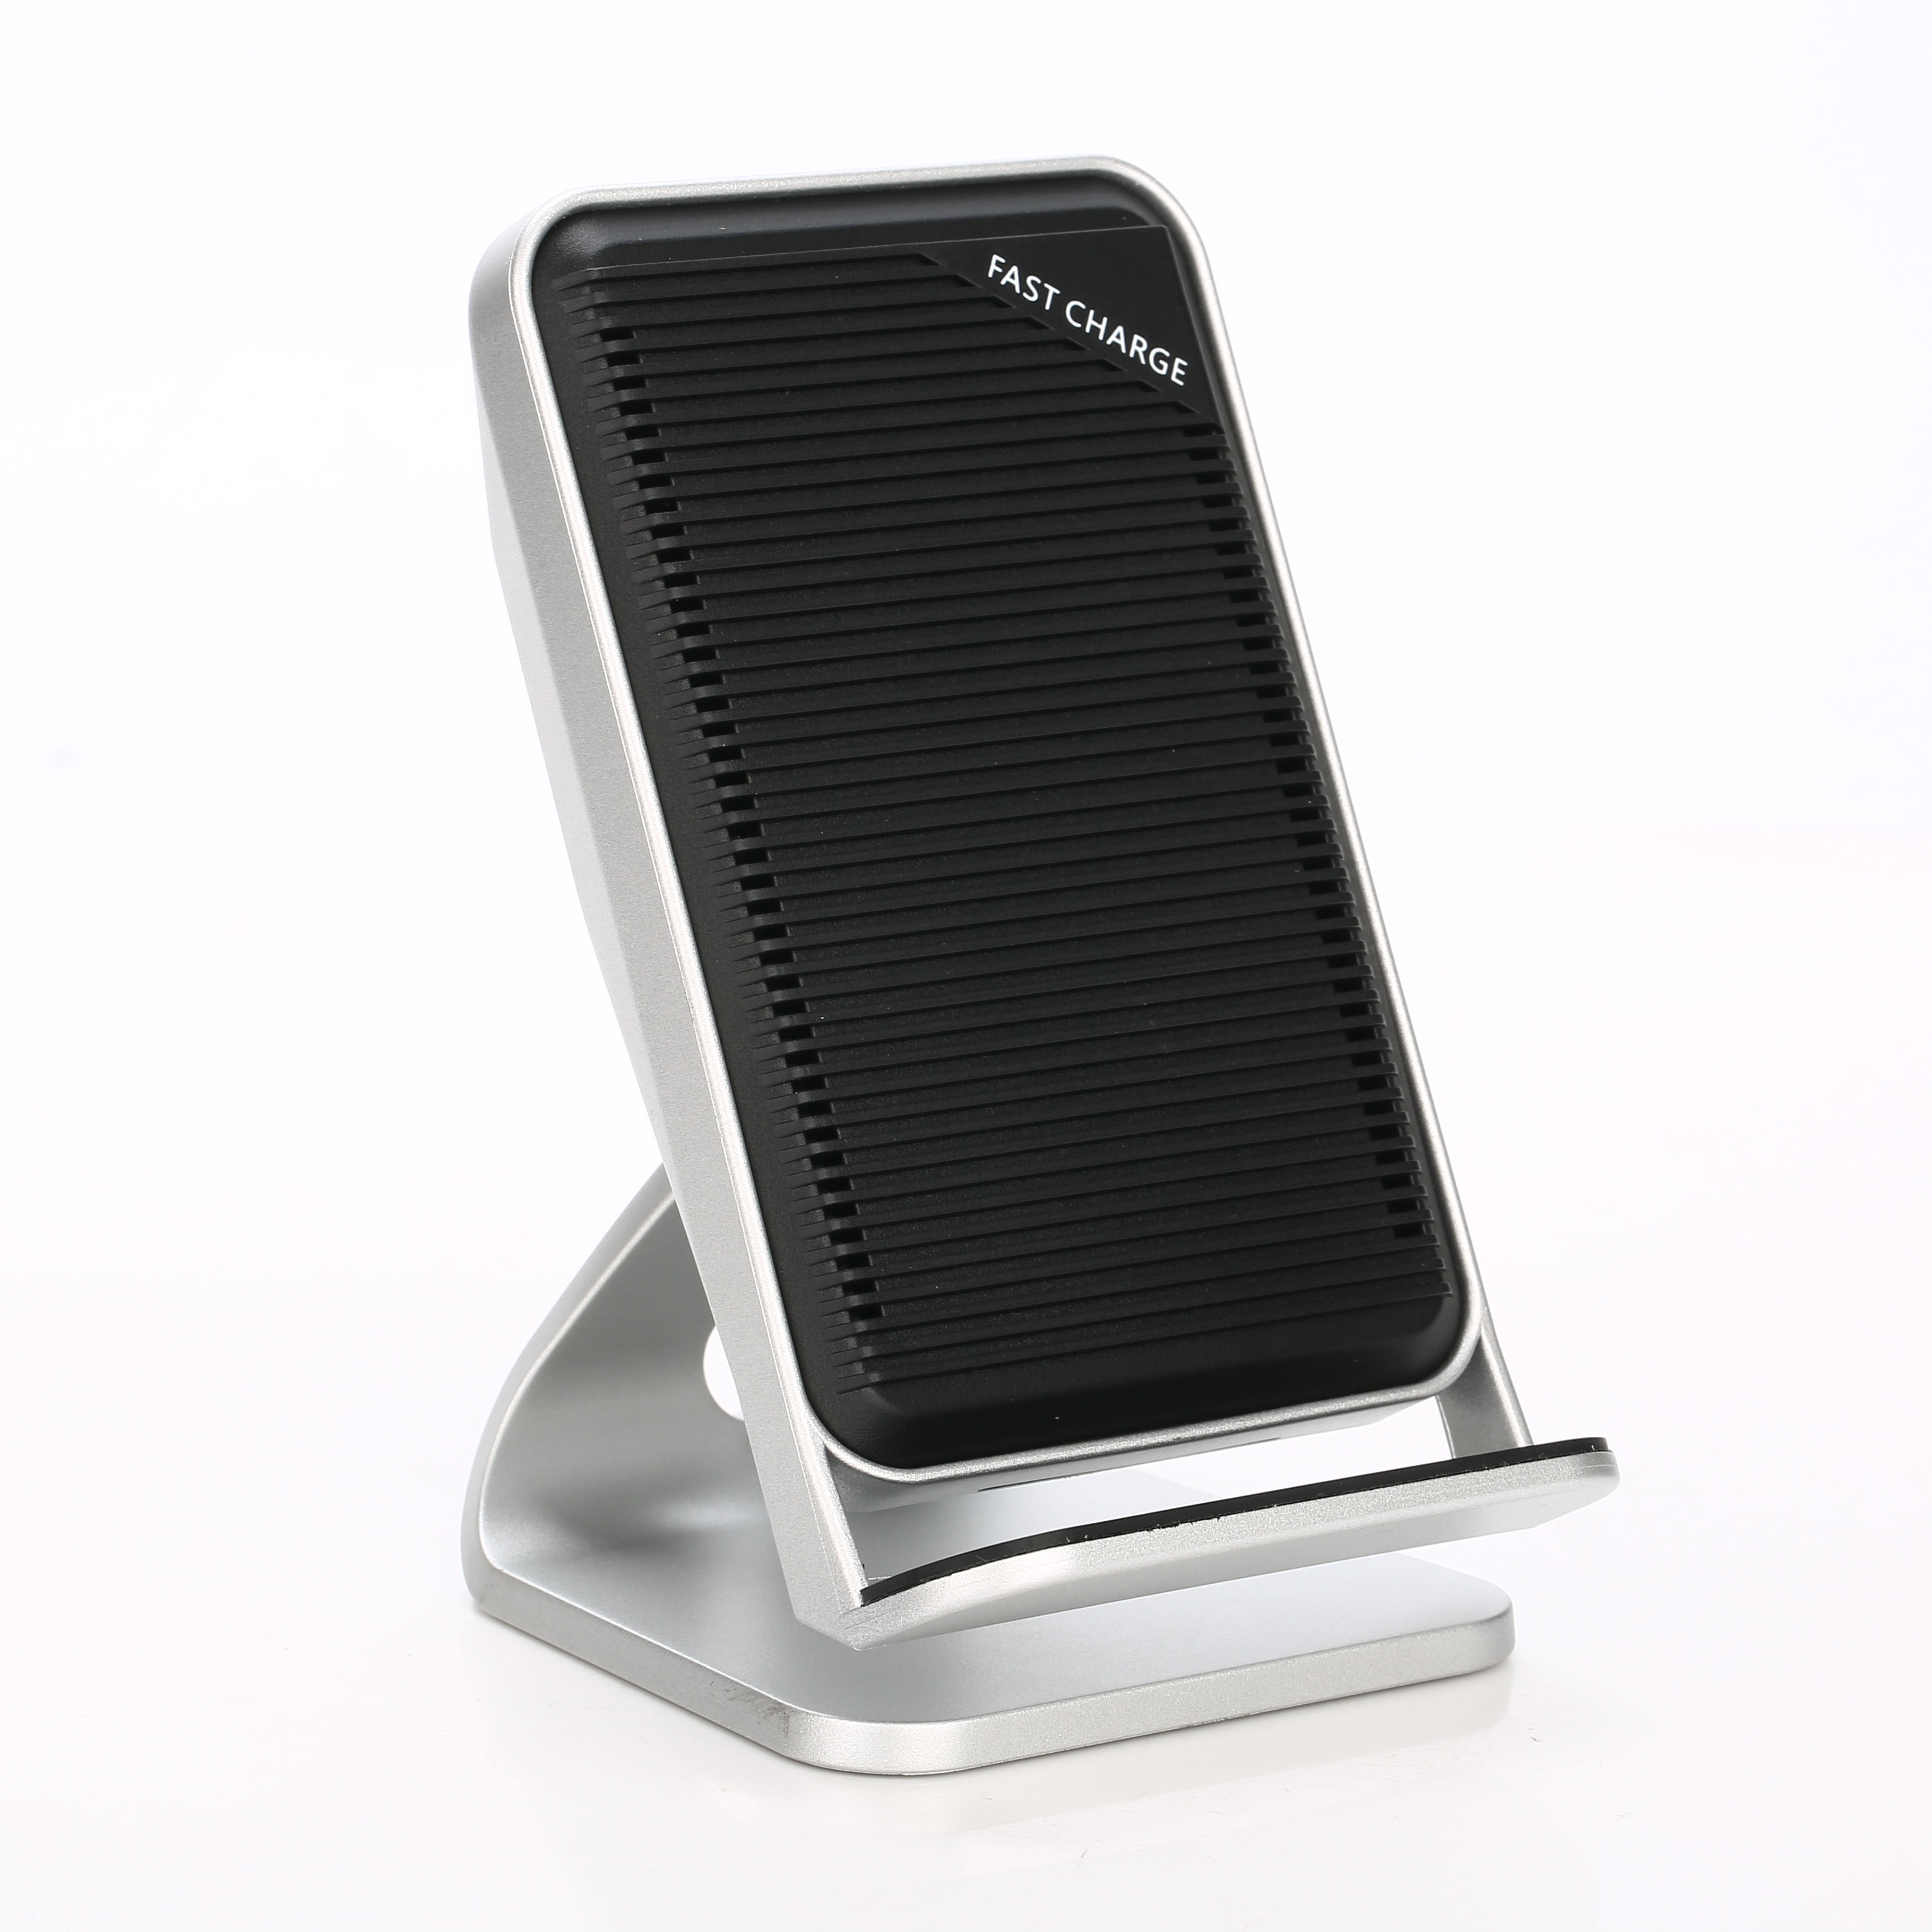 Turbo wireless charger S900